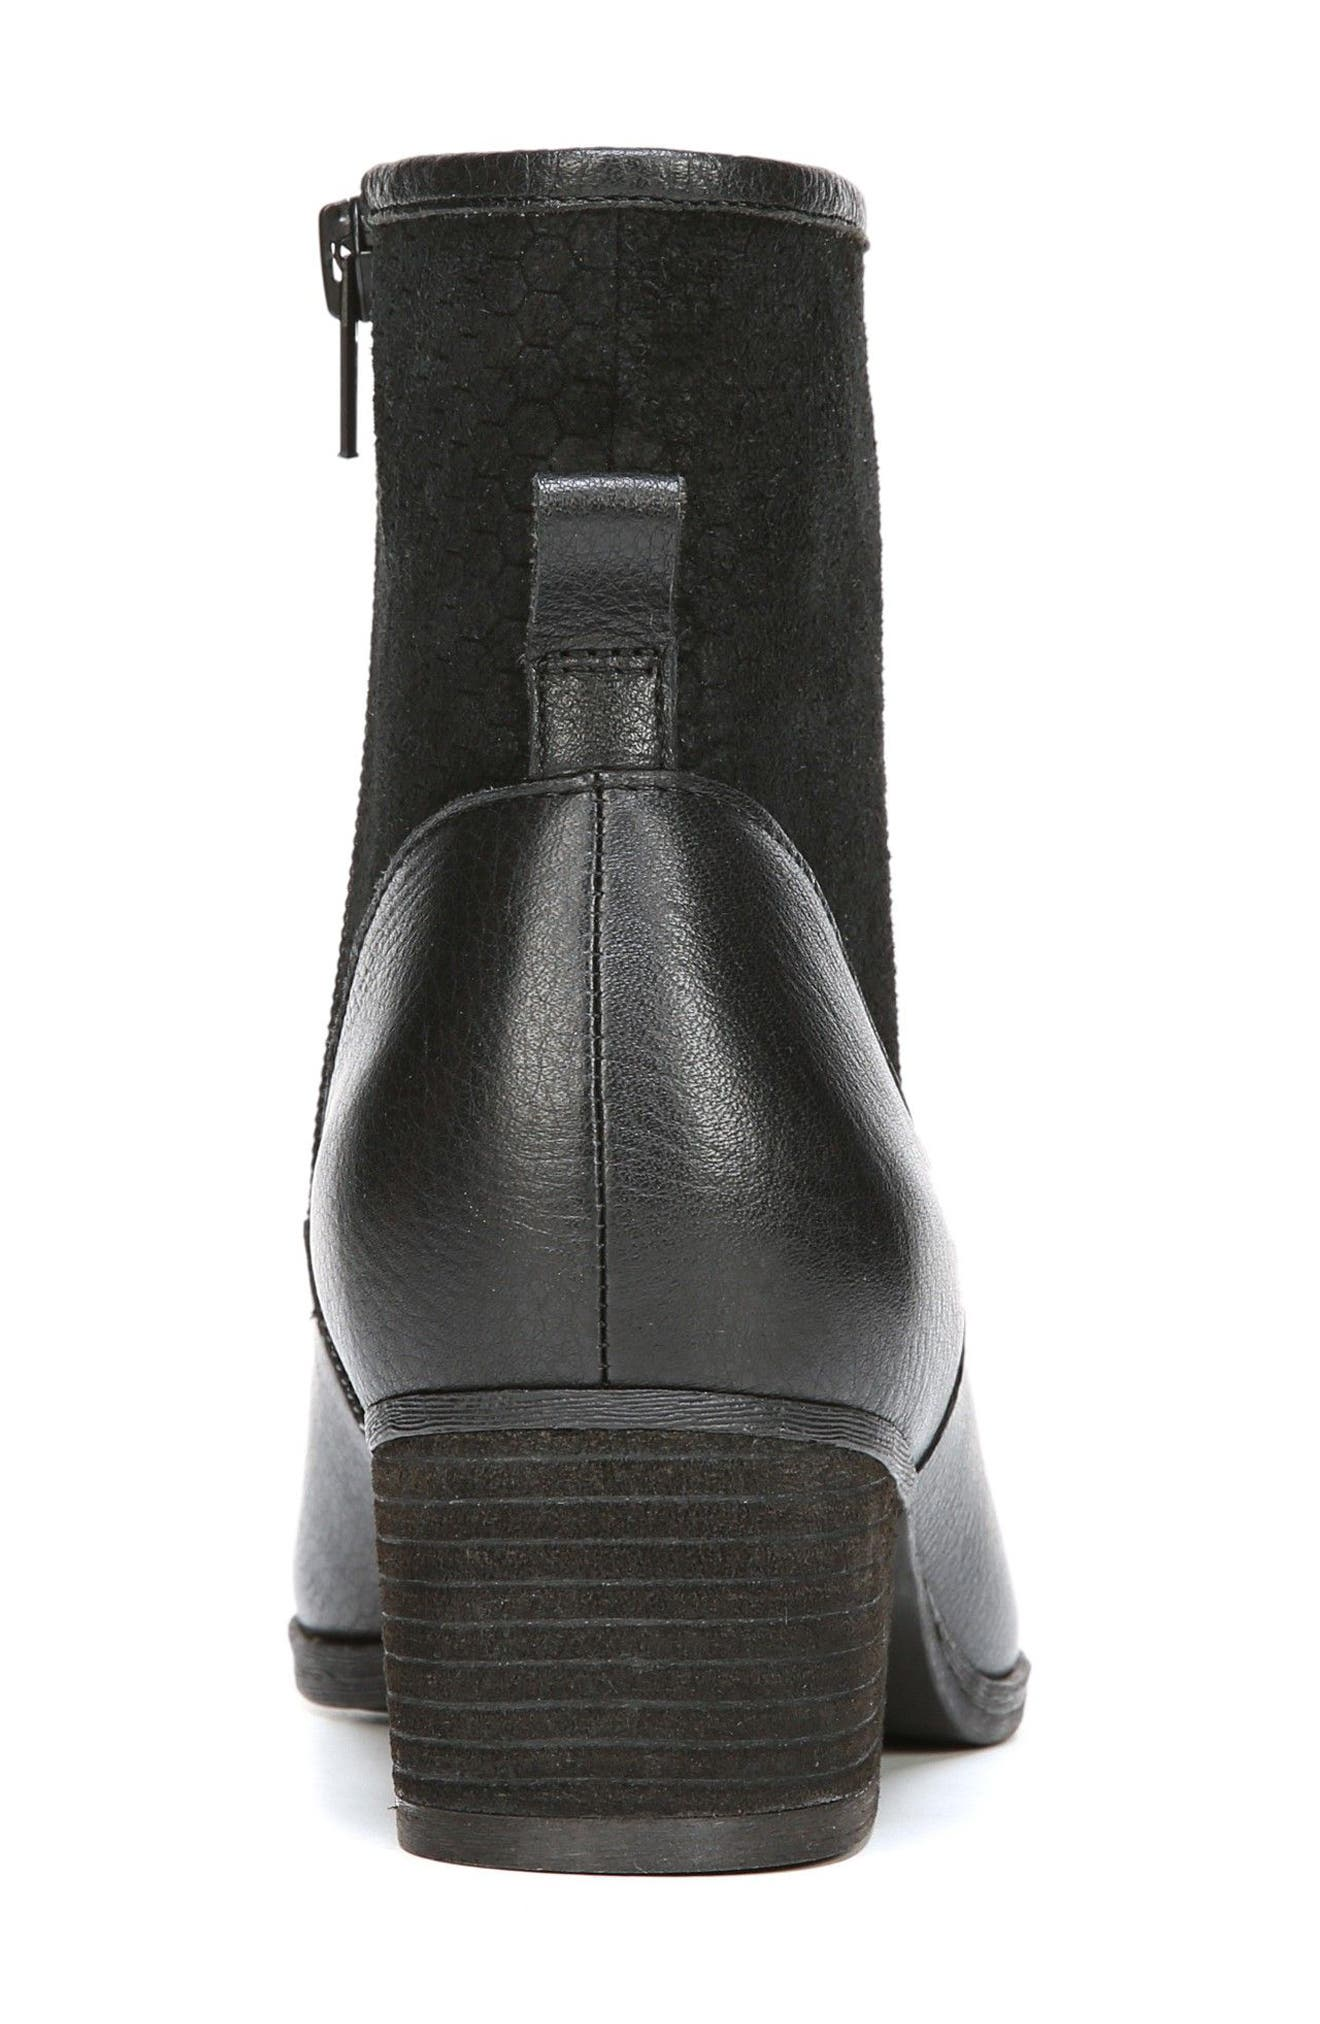 Tawny Bootie,                             Alternate thumbnail 7, color,                             001